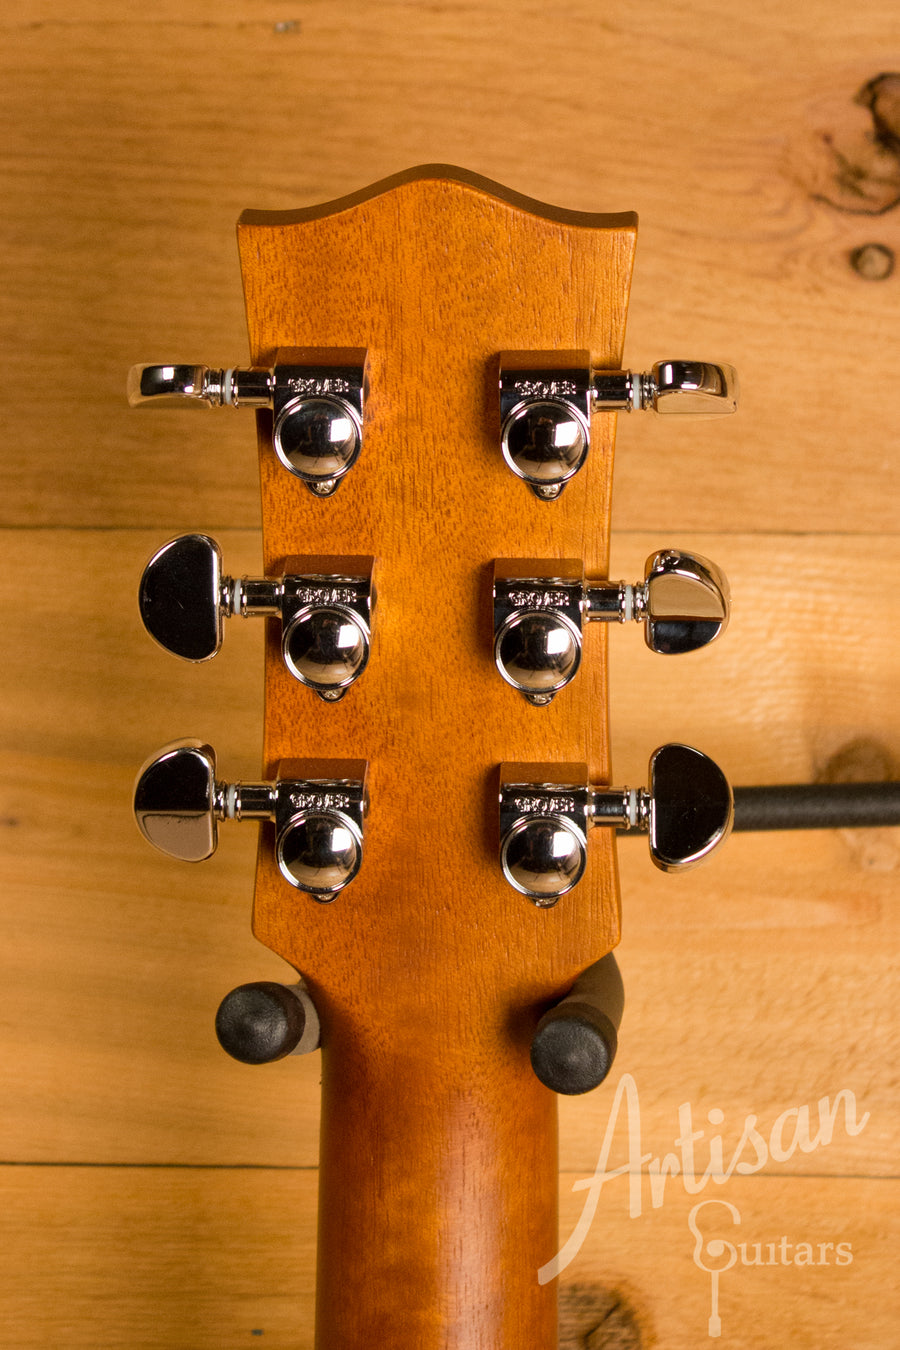 Maton EMD 6 Mini Maton Diesel Guitar Sitka with Blackwood and Vintage Amber Sunburst ID-10822 - Artisan Guitars